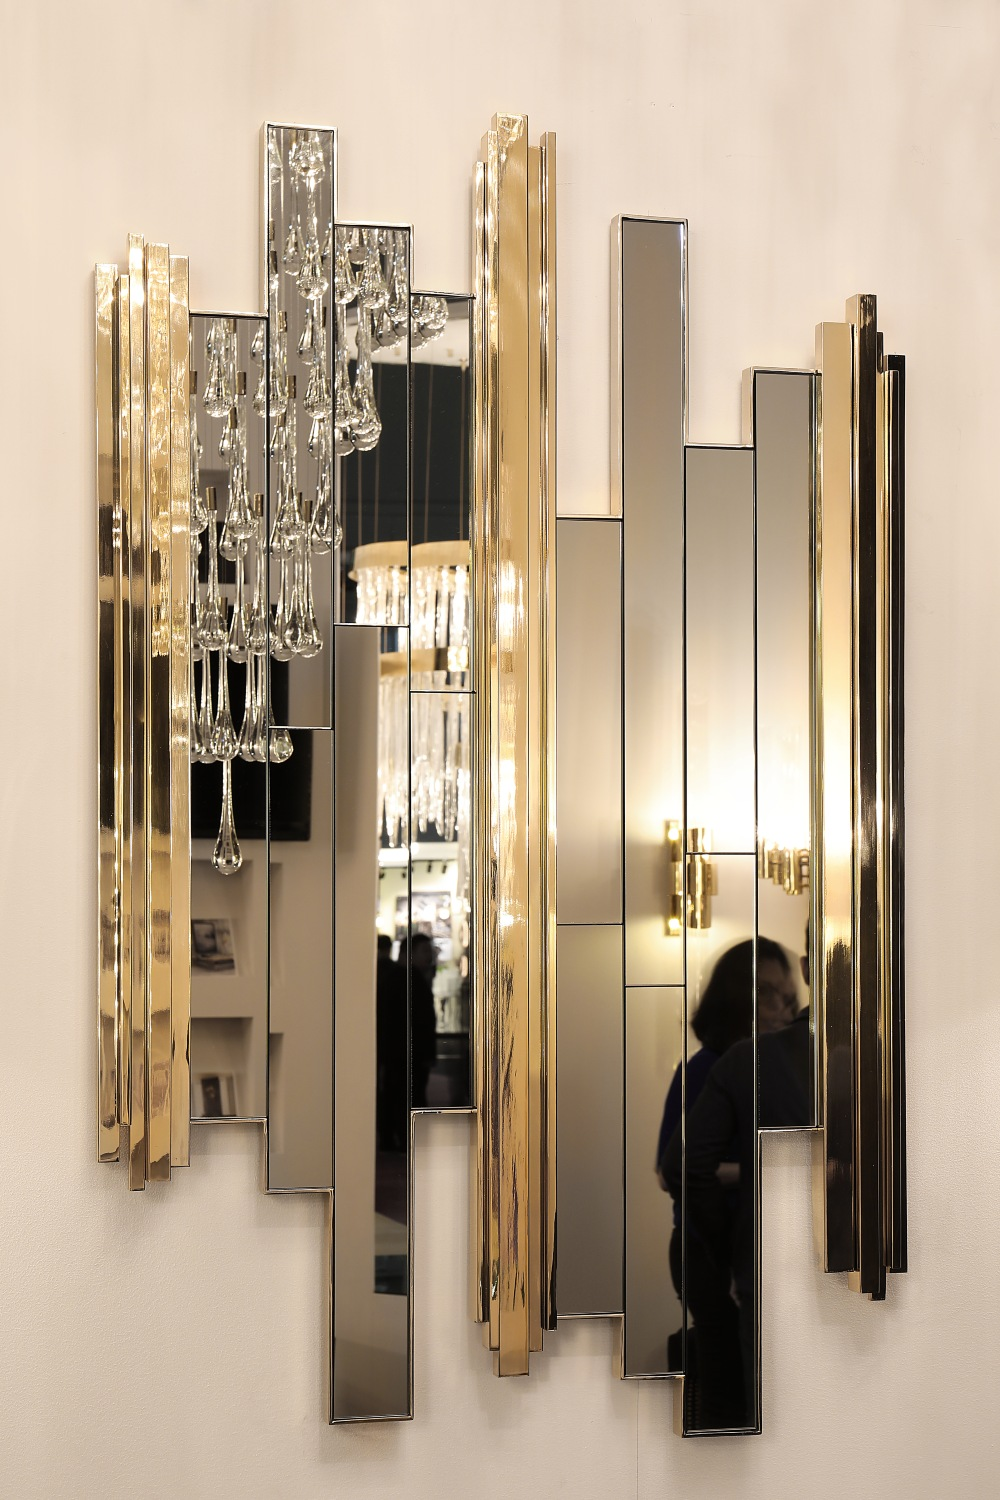 home decoration ideas Home Decoration Ideas: 10 Ostentatious Mirrors for a Unique Aesthetic Home Decoration Ideas 10 Ostentatious Mirrors for a Unique Aesthetic 21